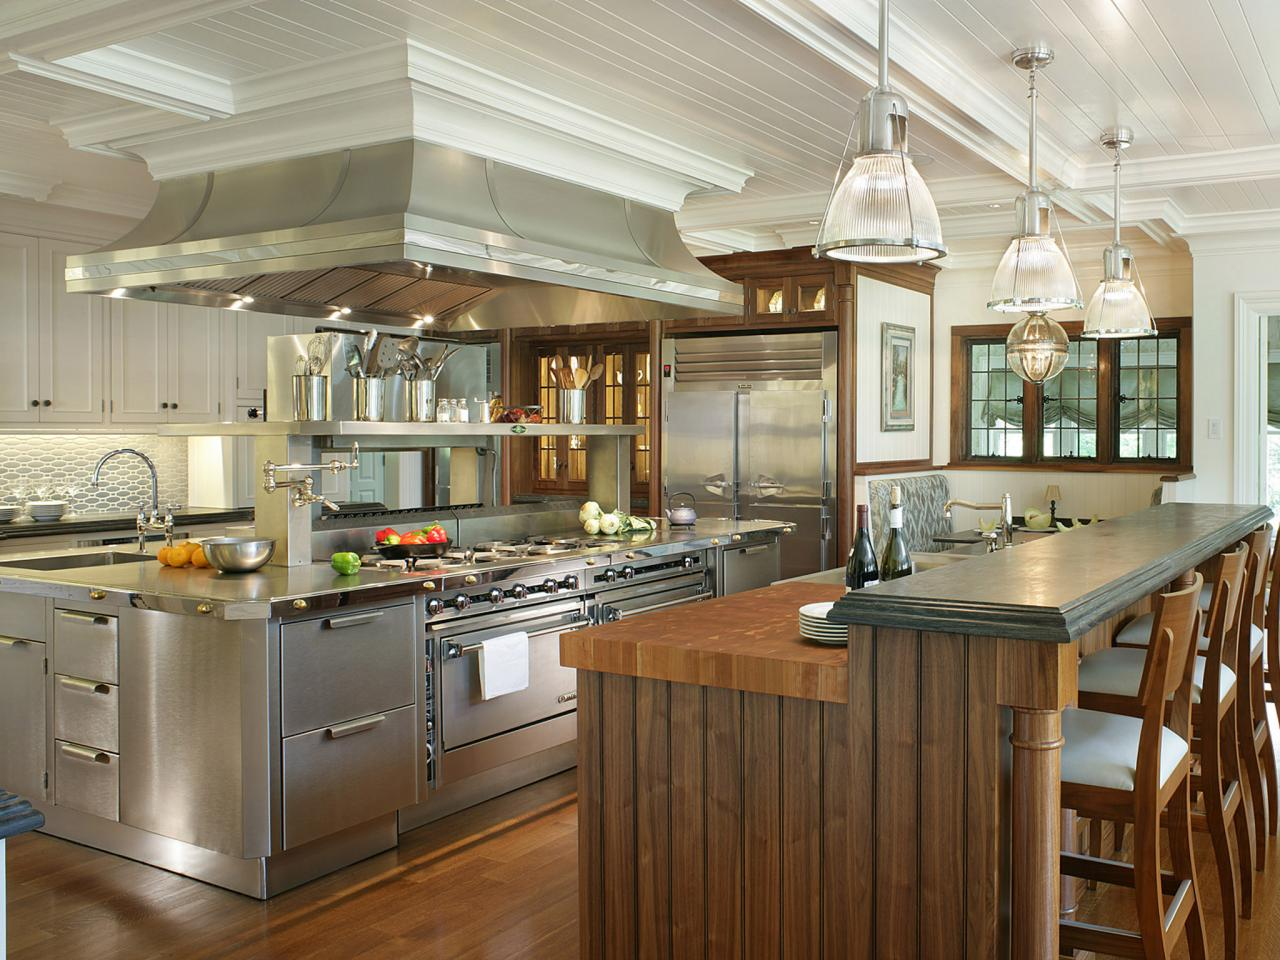 Dream Kitchens A Chef's Dream Kitchen  Peter Salerno  Hgtv